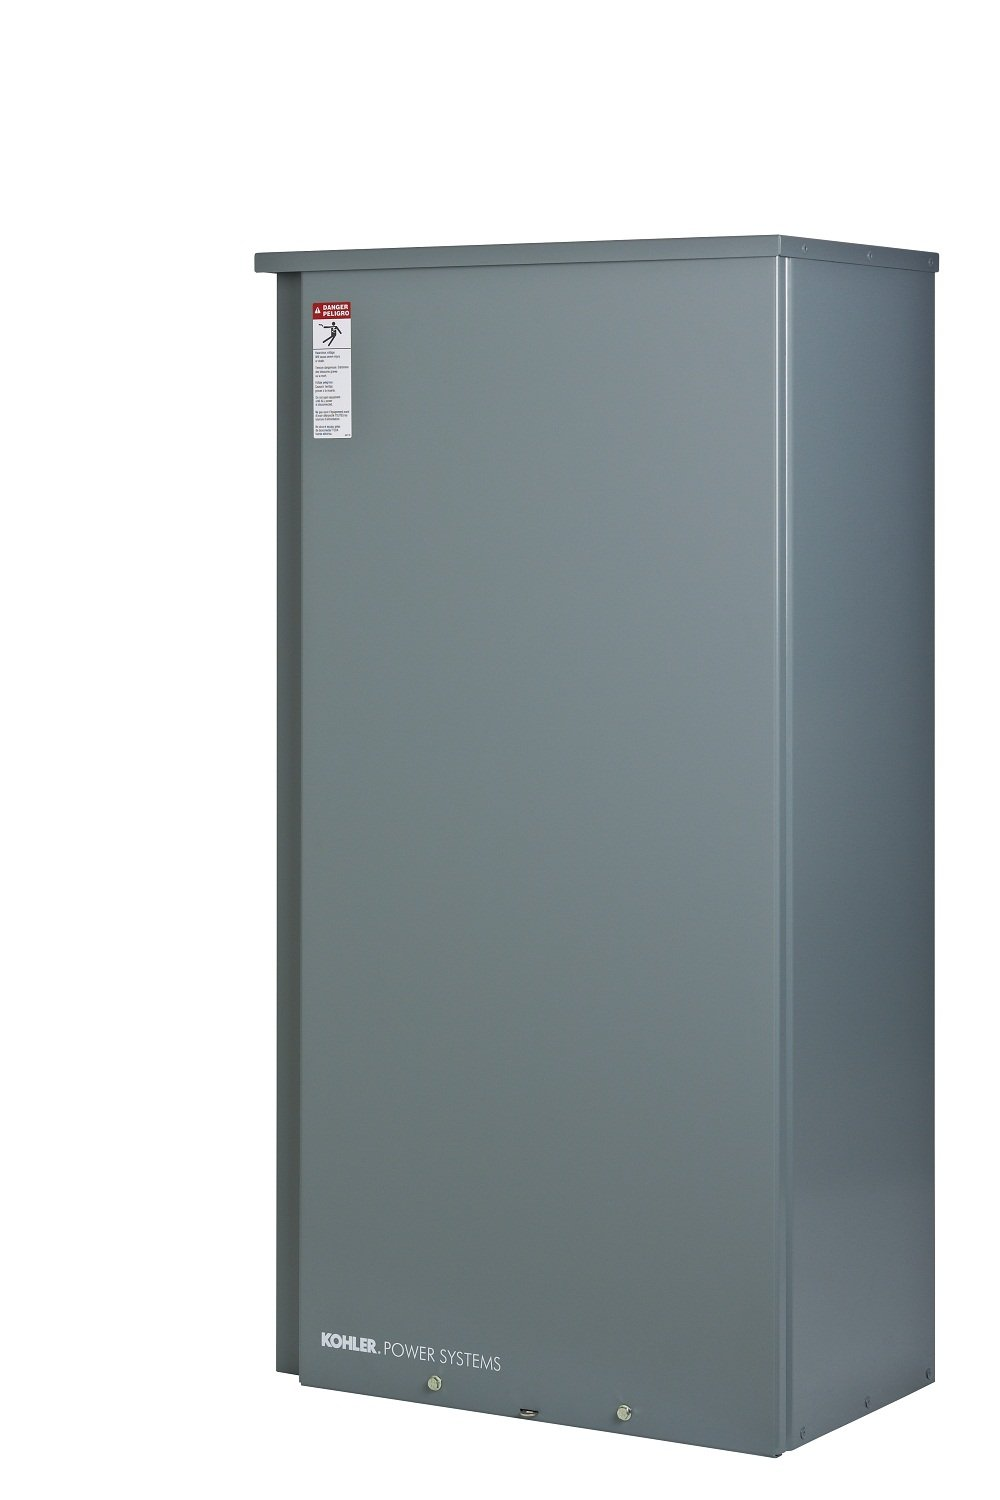 Kohler RXT-JFNC-0400A 400 Amp Whole-House Indoor//Outdoor-Rated Automatic Transfer Switch